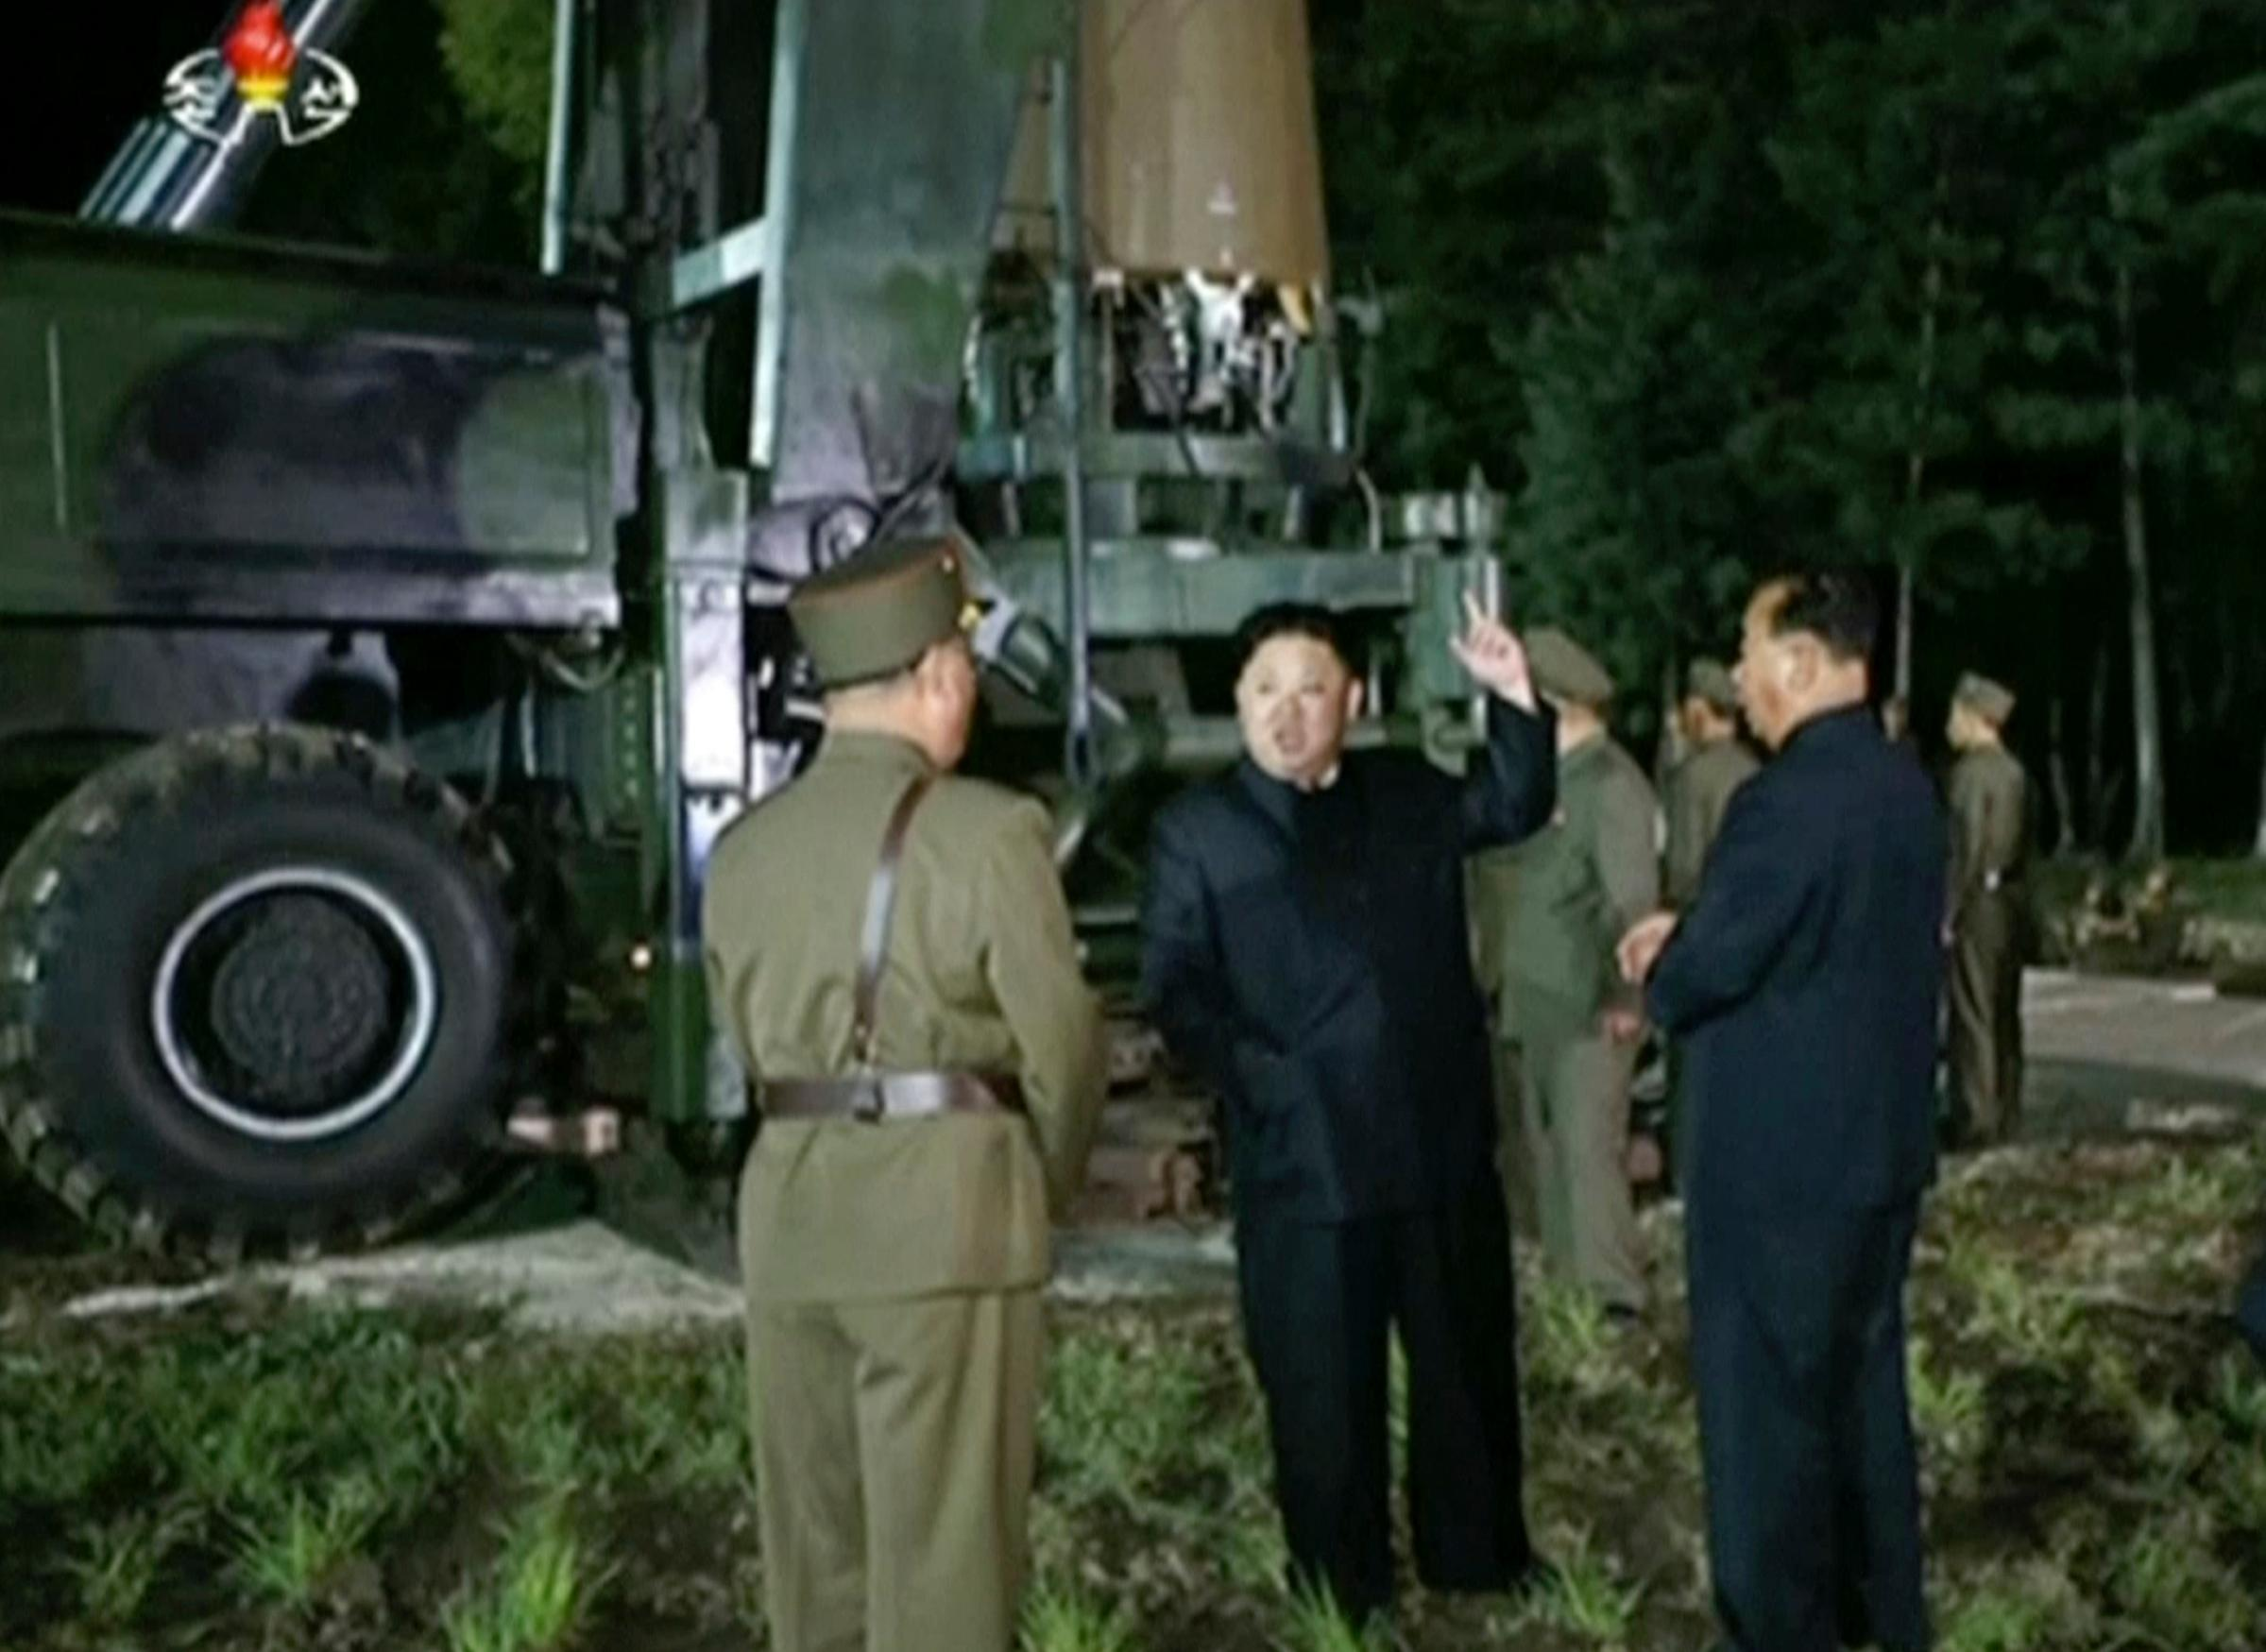 FILE - In this file image made from video by North Korea's KRT released on July 28, 2017, North Korean leader Kim Jung Un, second from right, gestures at the site of a missile test at an undisclosed location in North Korea. (KRT via AP Video, File)